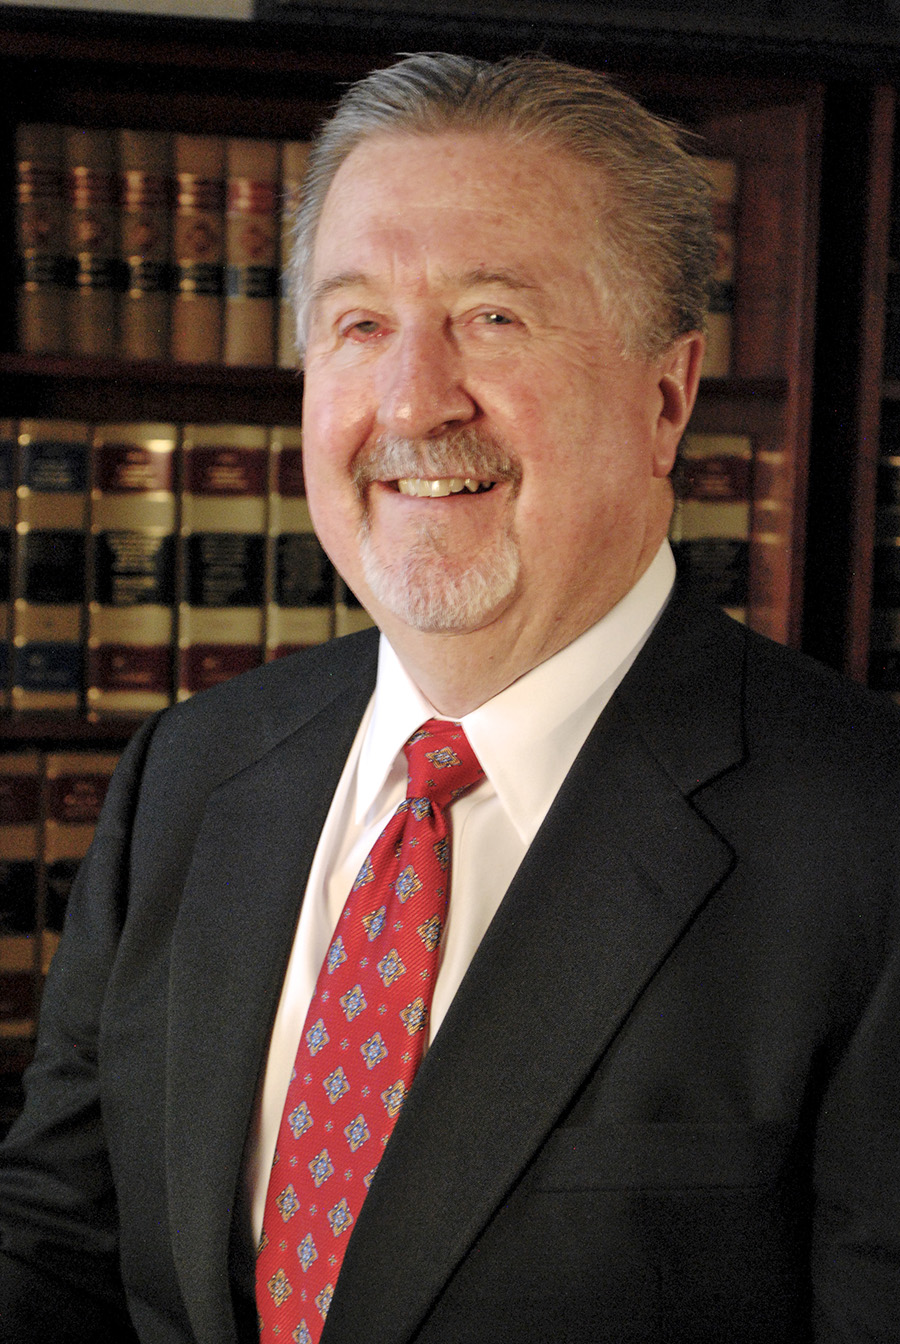 Image of Gary L. Cooper